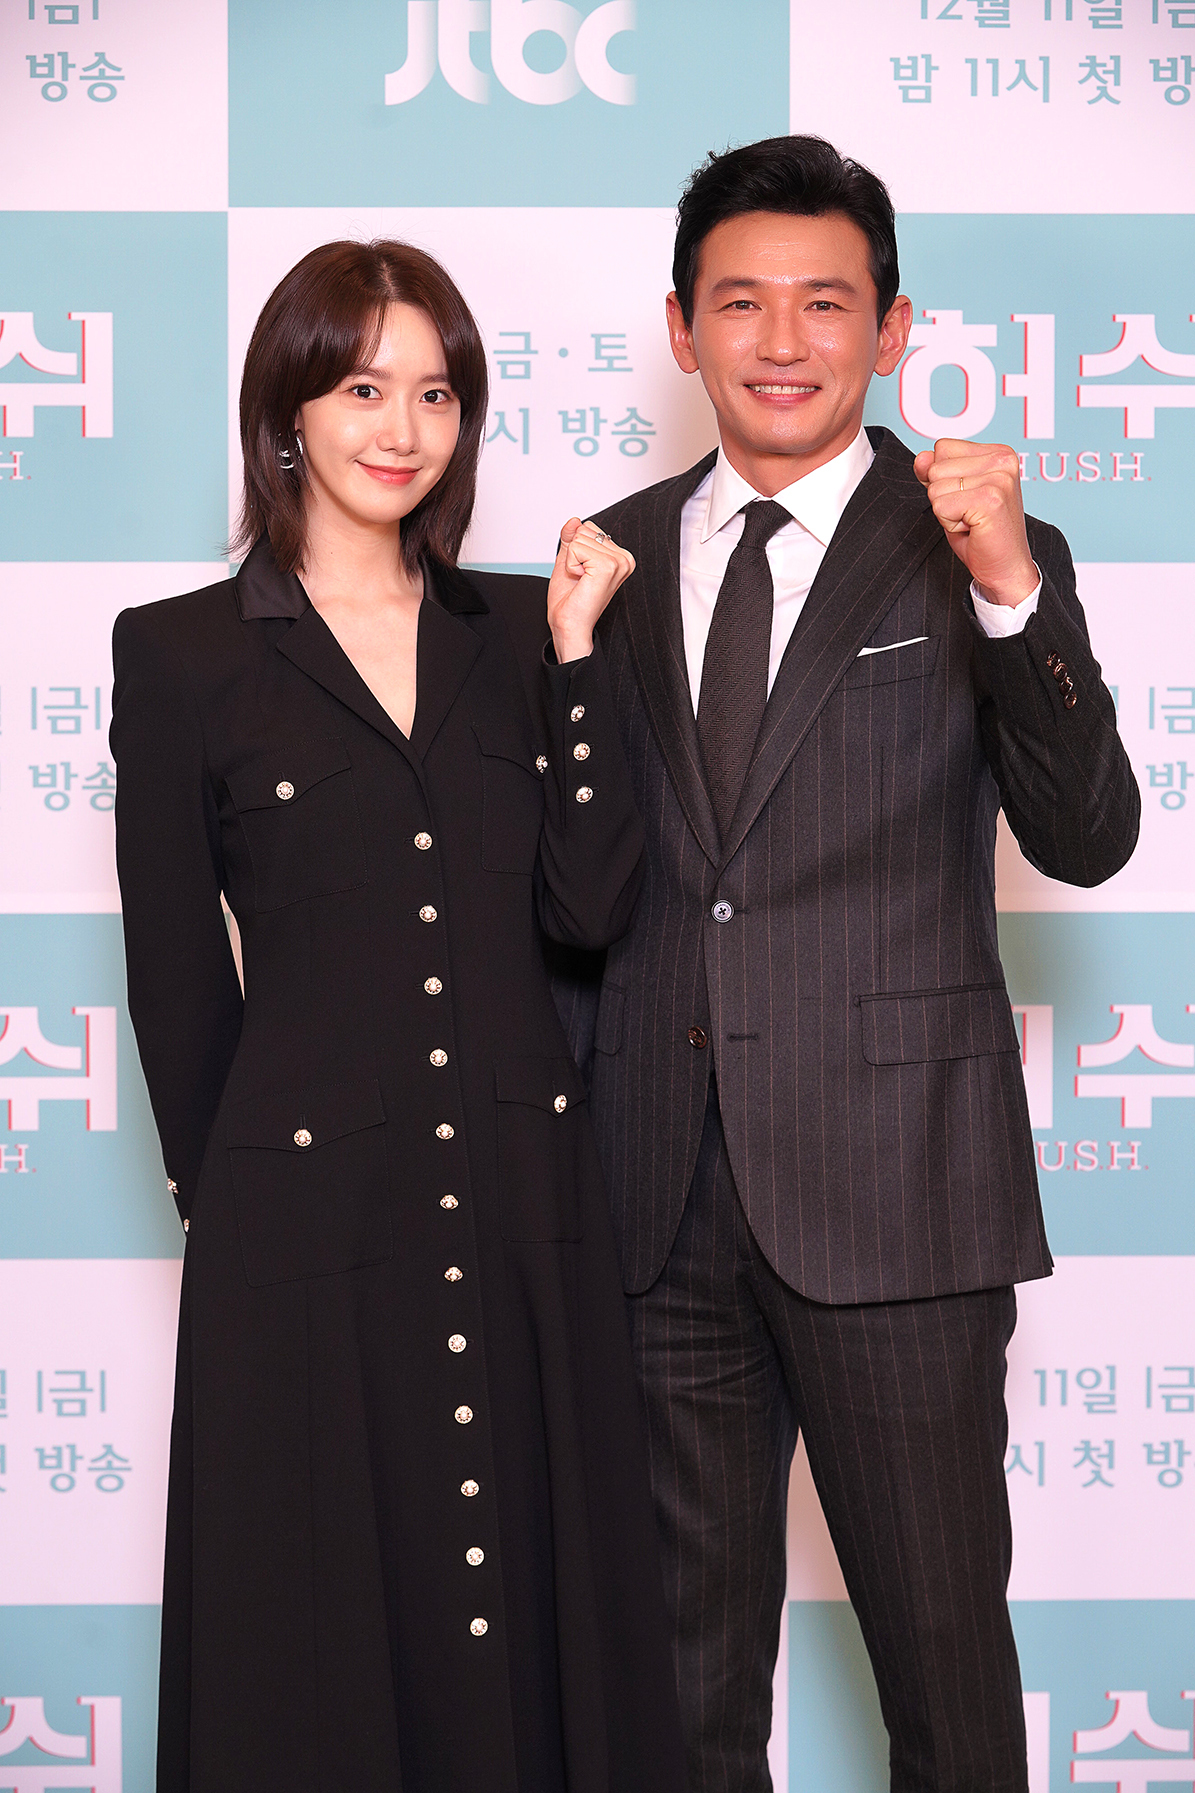 """Veteran actor Hwang Jung-min and Yoona pose before an online conference for JTBC drama series """"Hush"""" on Thursday. (JTBC)"""